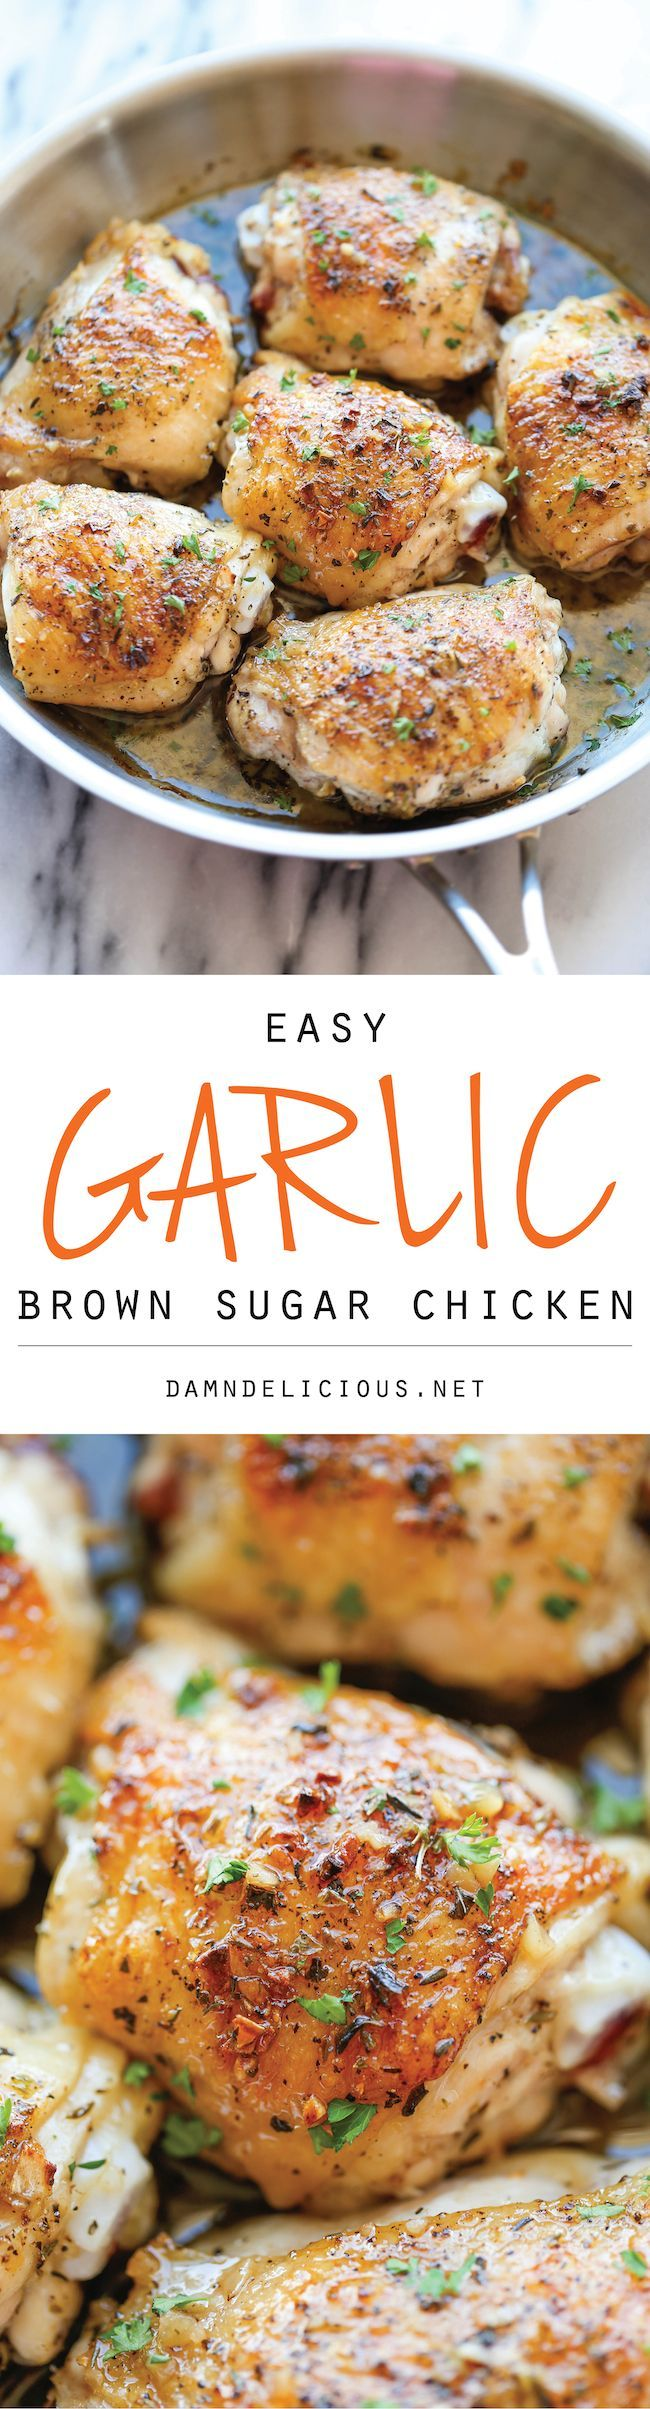 Garlic Brown Sugar Chicken Thighs Recipe  - The best and easiest chicken ever, baked to crisp-tender perfection!